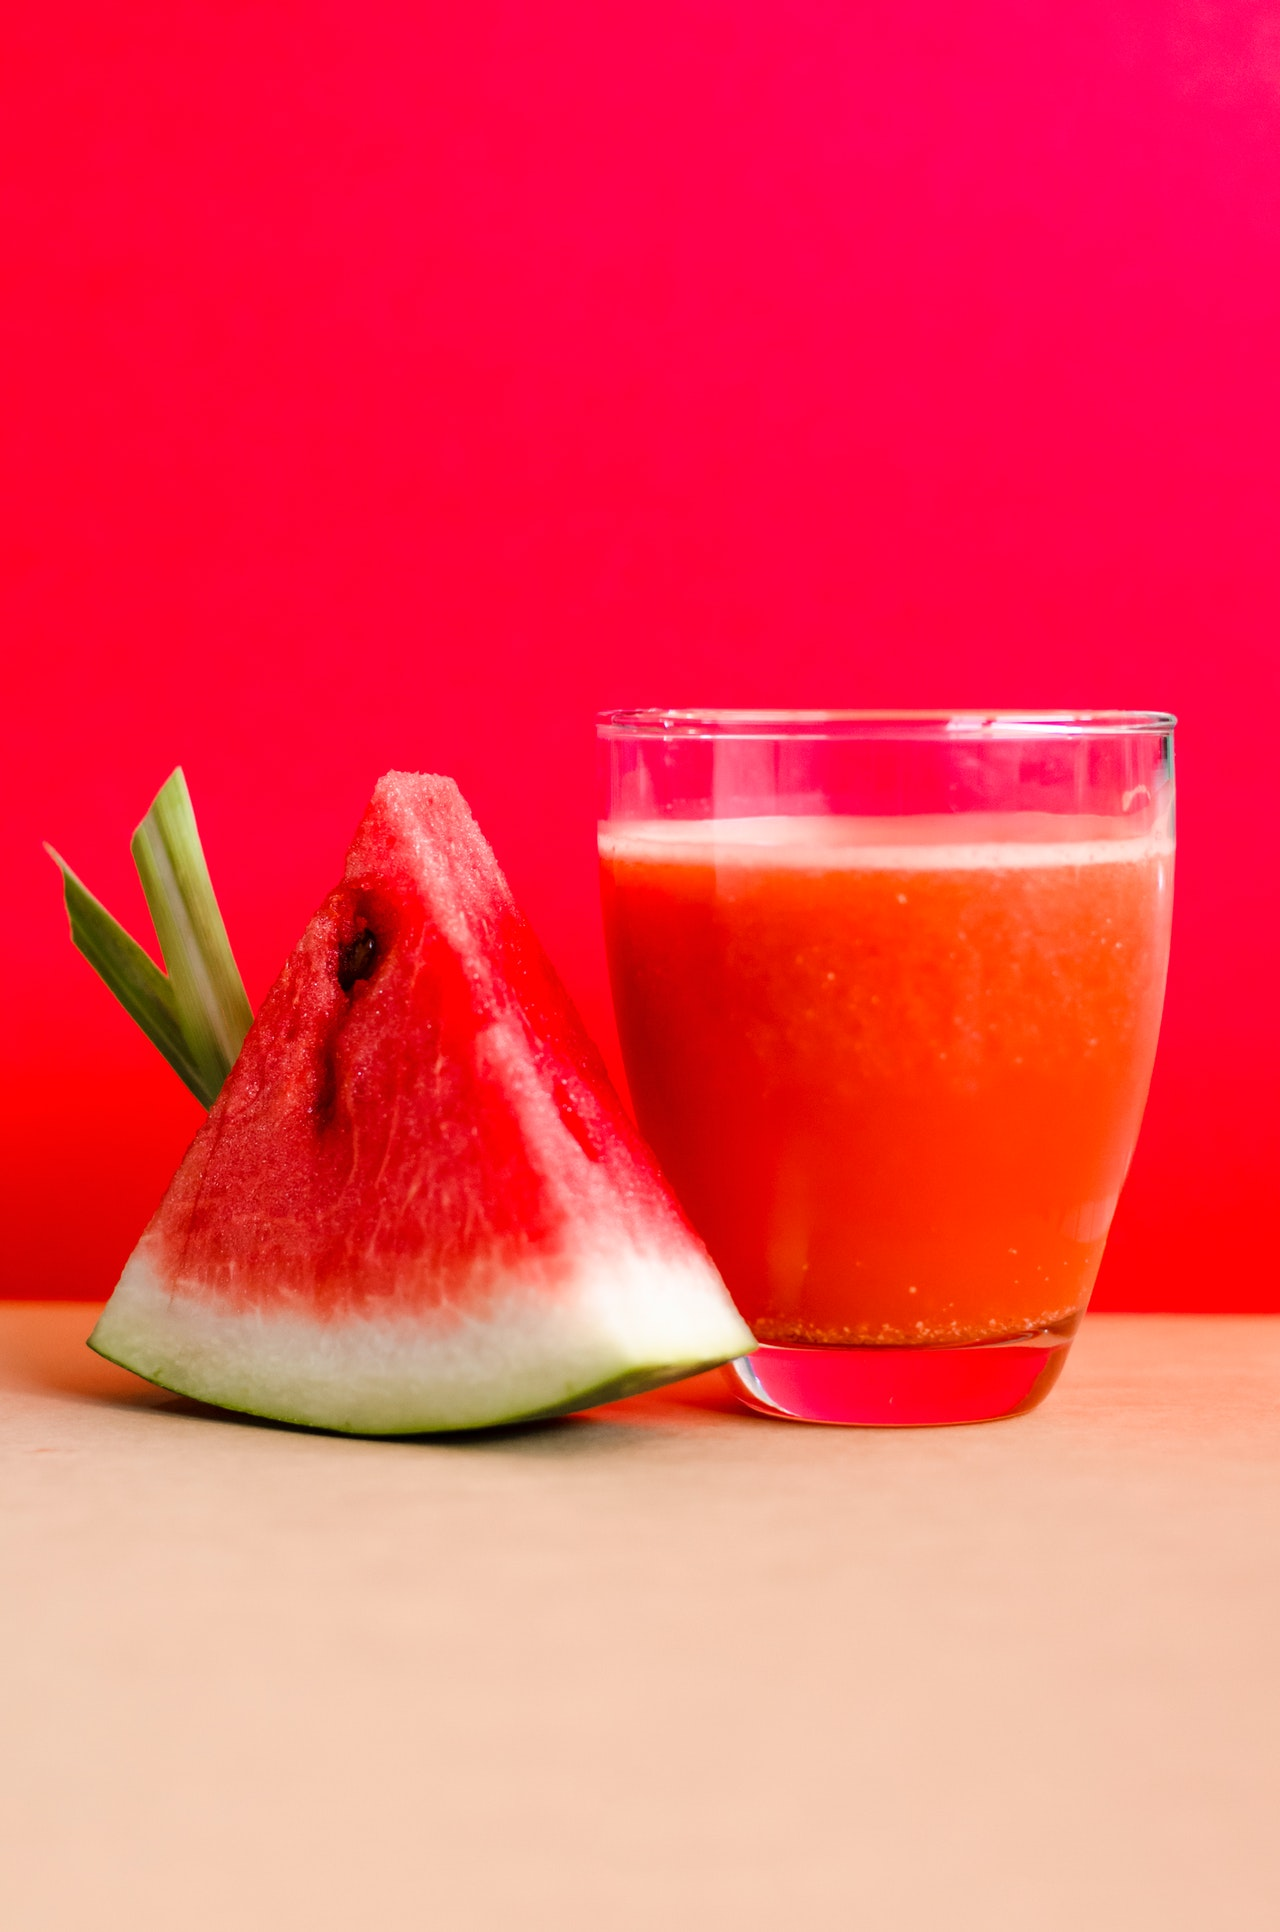 watermelon-shake-filled-glass-cup-beside-sliced-watermelon-1337825